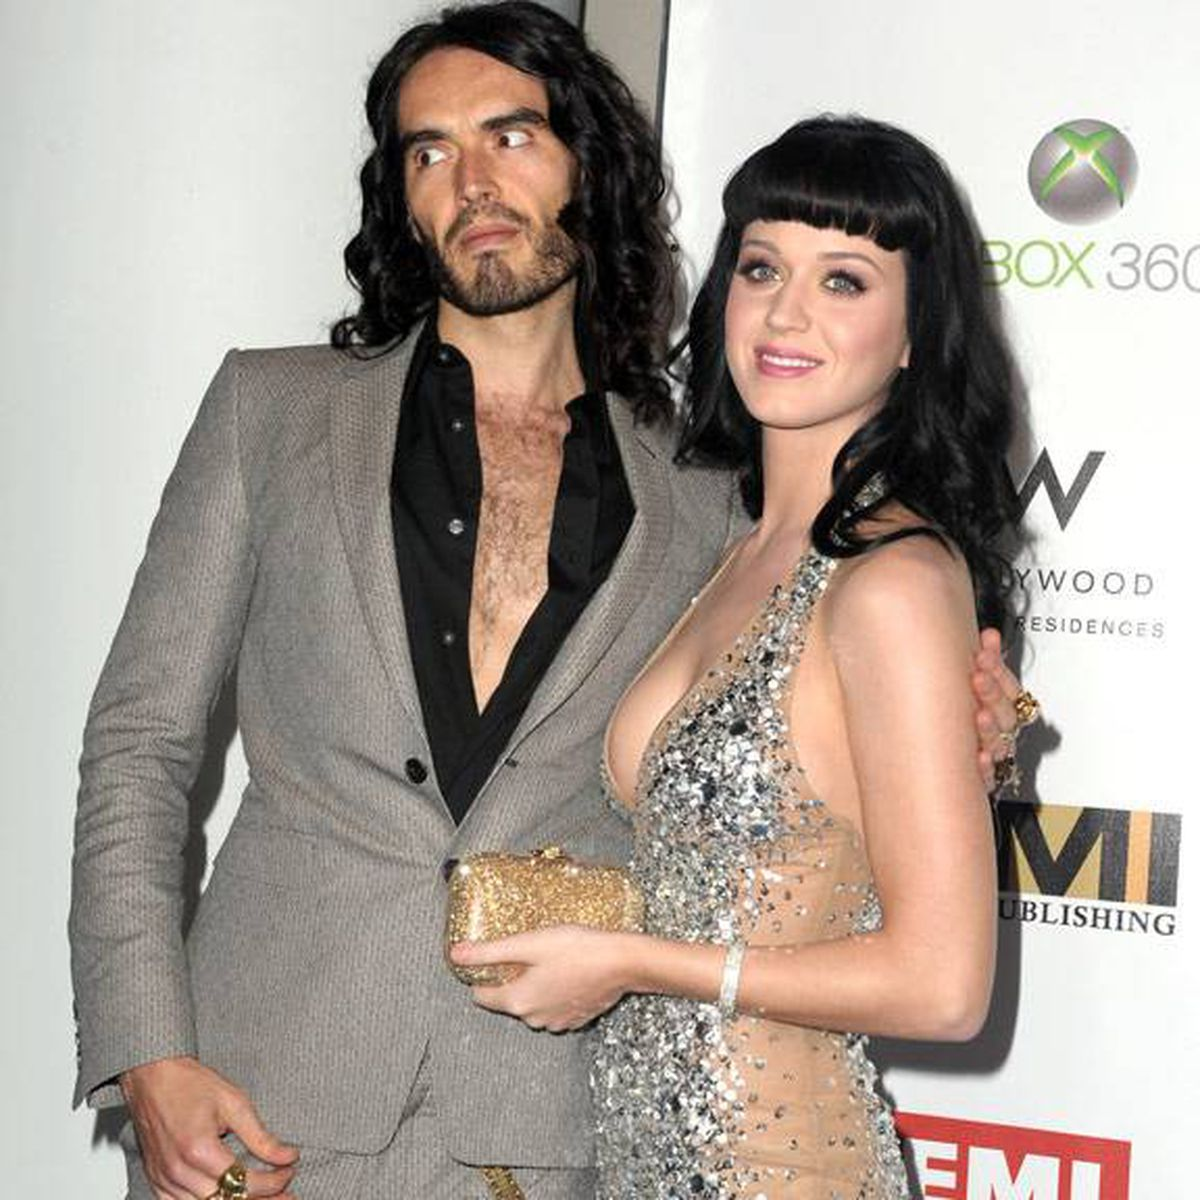 Russell Brand and Katy Perry at the 2010 EMI Grammy party. Michael Buckner/Getty Images